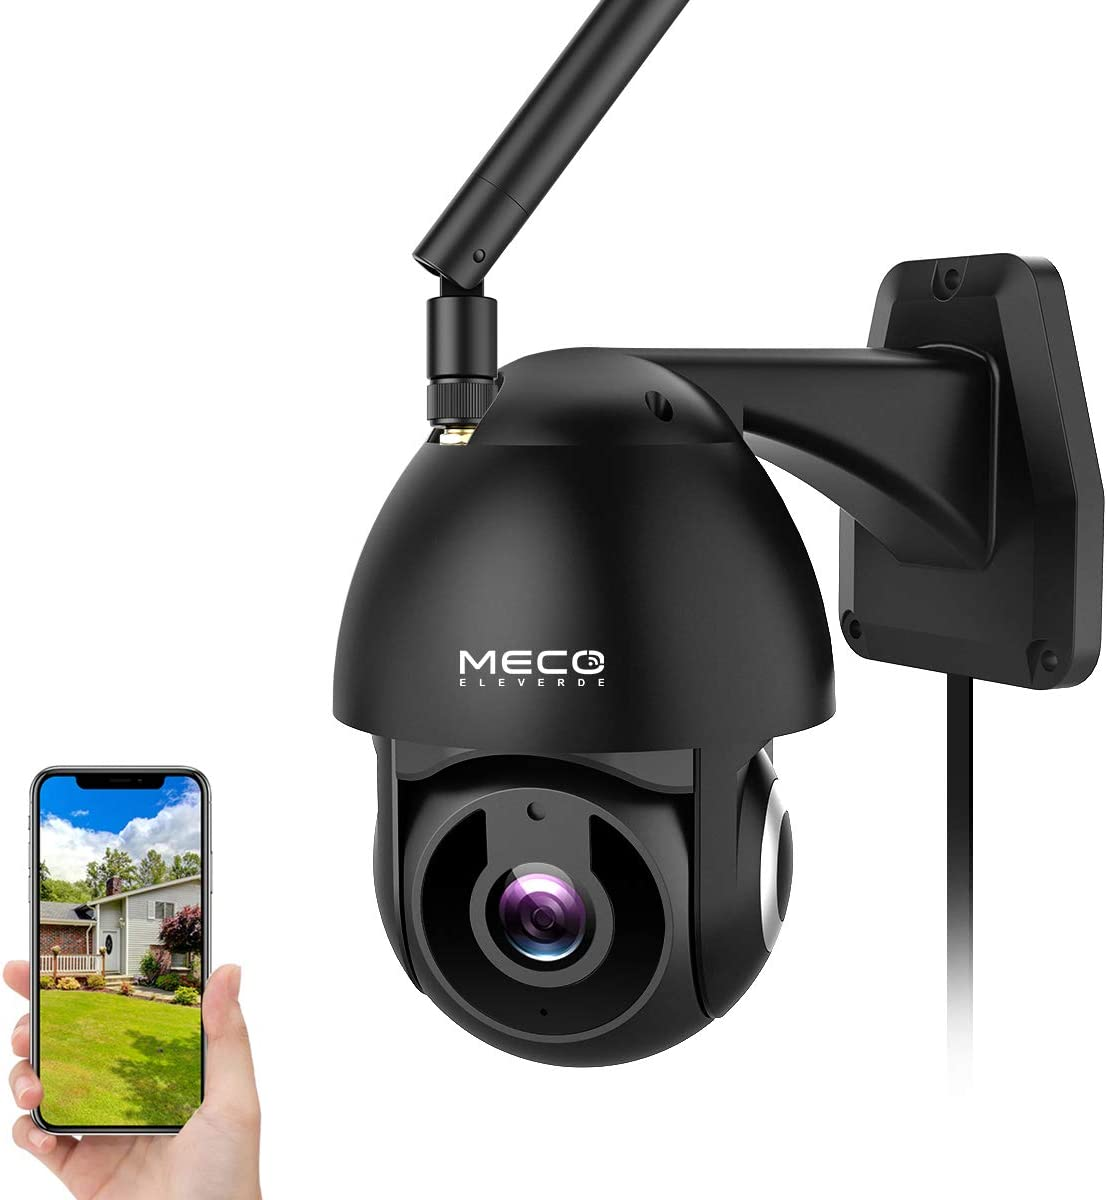 Outdoor Camera Wireless, MECO 1080P HD Pan/Tilt WiFi Home Security Camera with Waterproof, Motion Detection, Auto Tracking, Night Vision, 2-Way Audio, Compatible with Alexa [Not Battery-Powered]